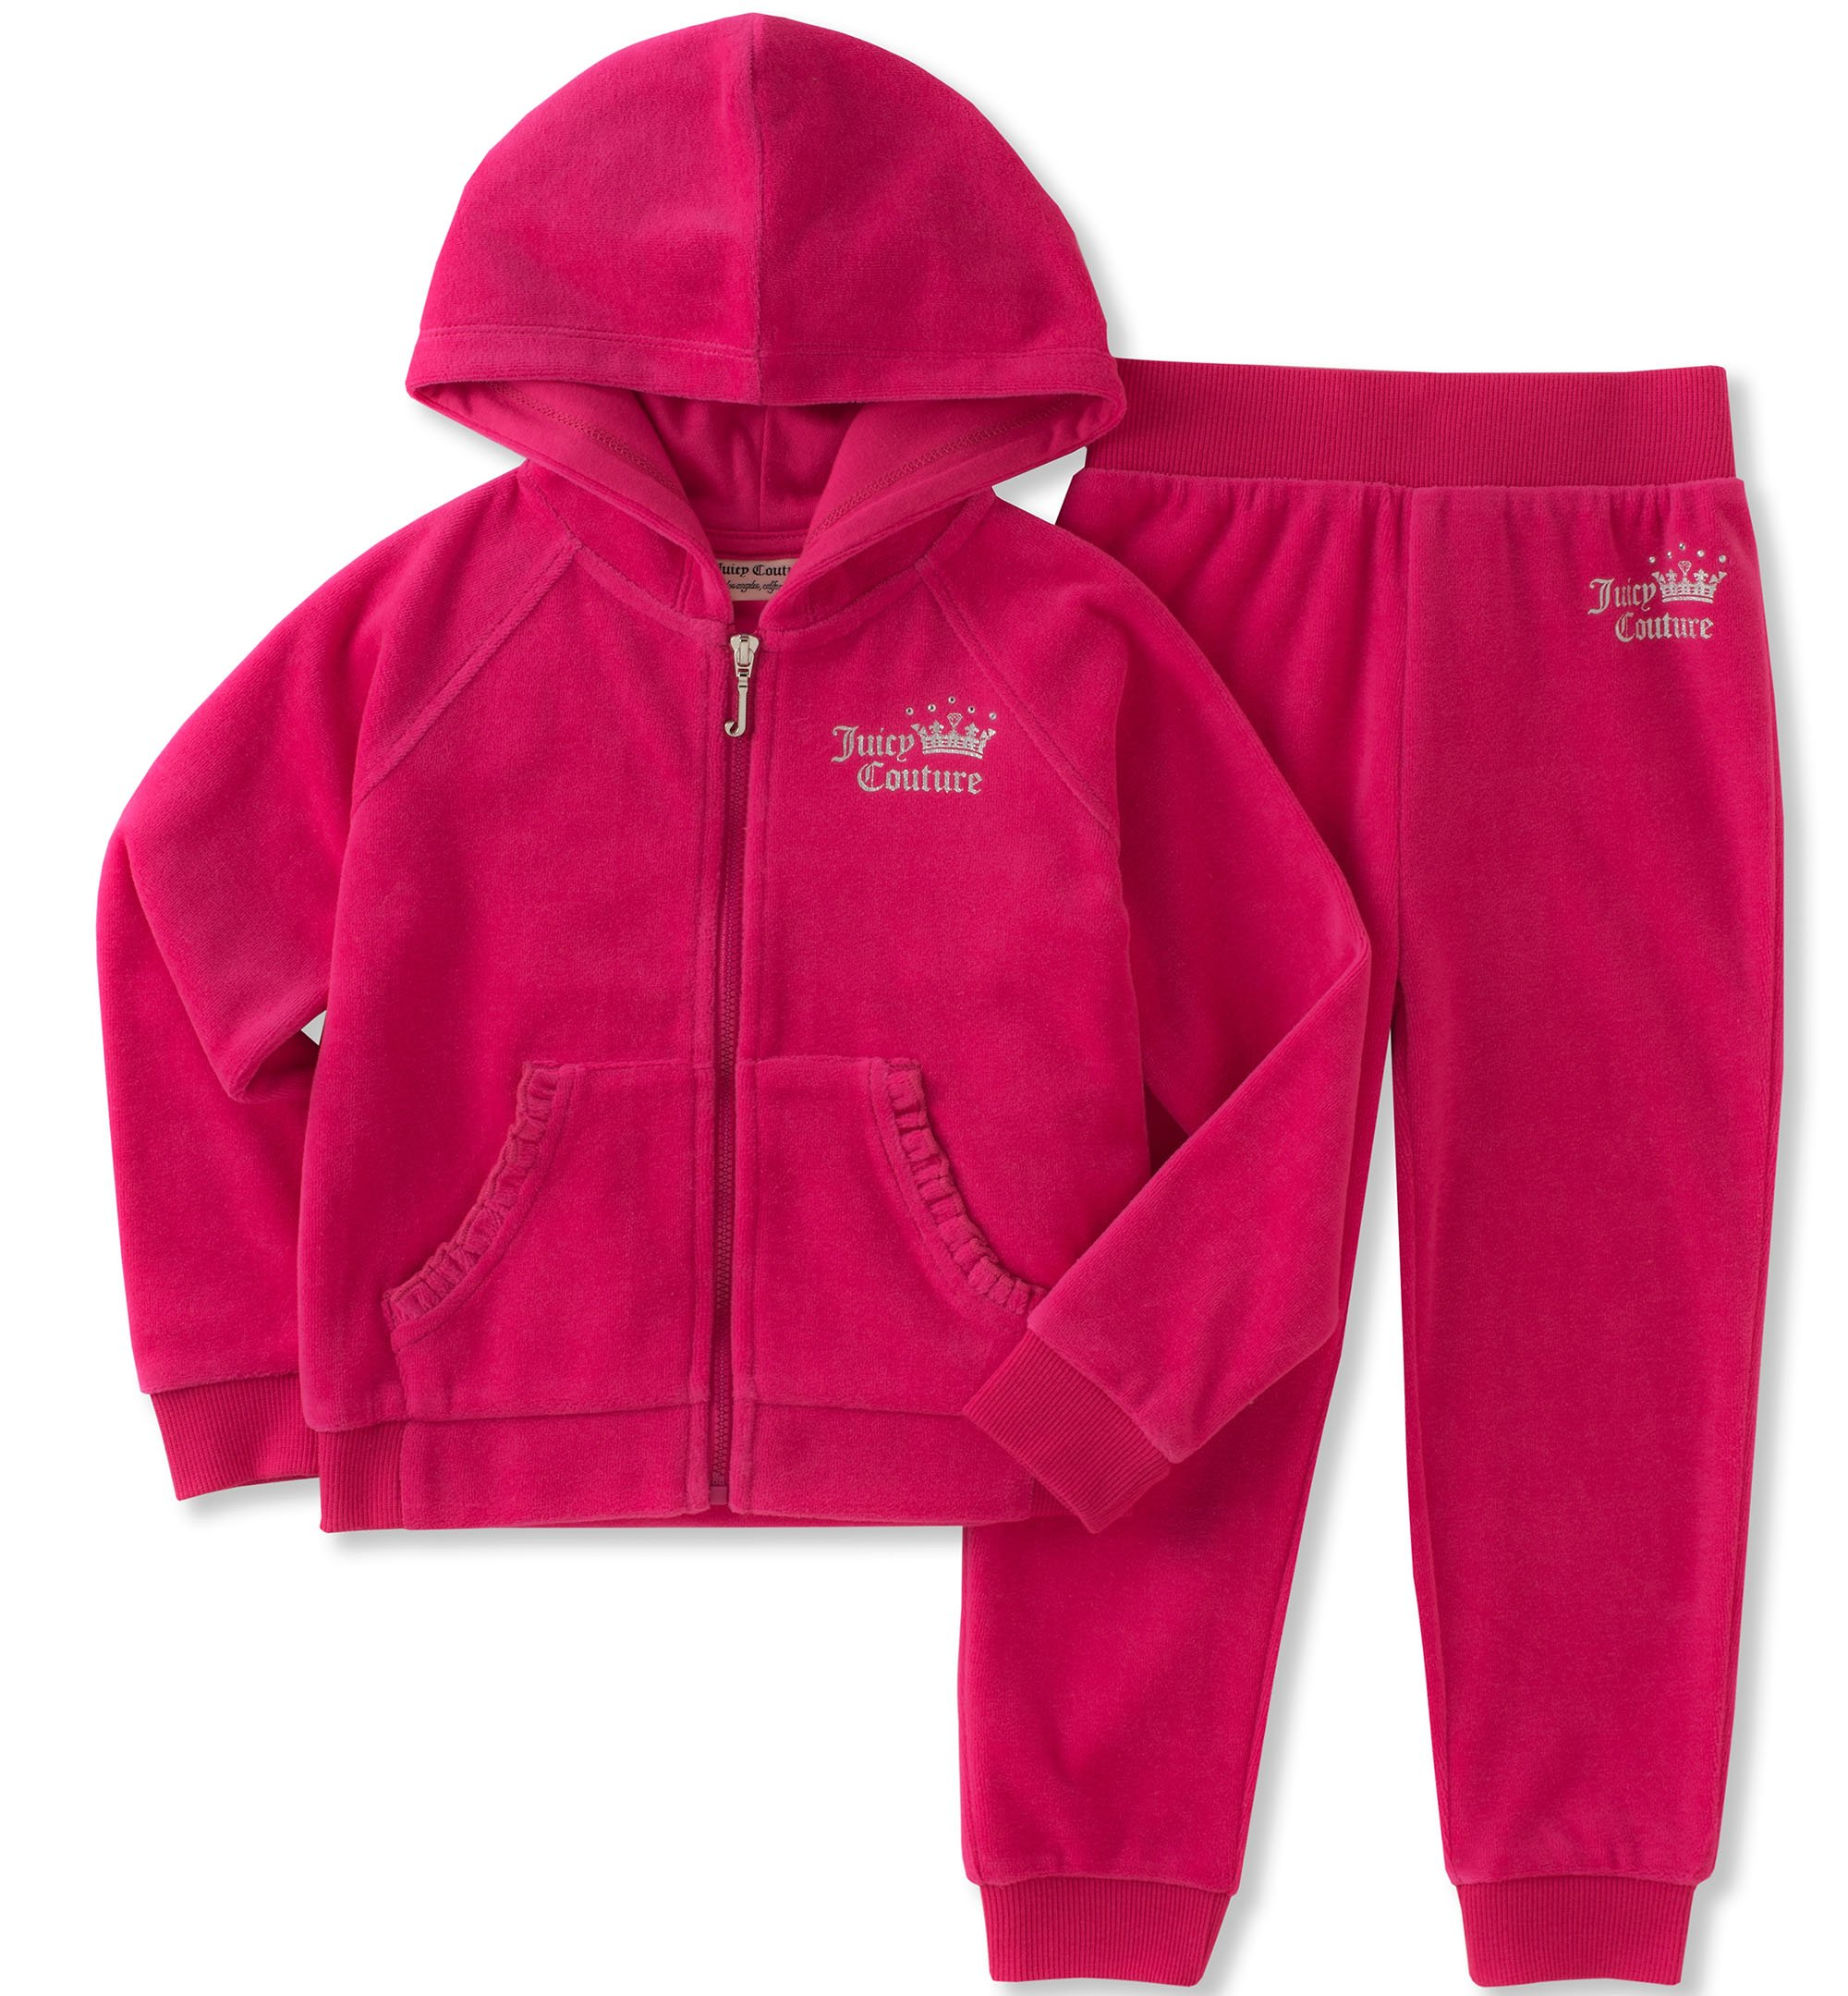 Juicy Couture Girls' 2 Piece Velour Pants Set, Dark Pink, 12M